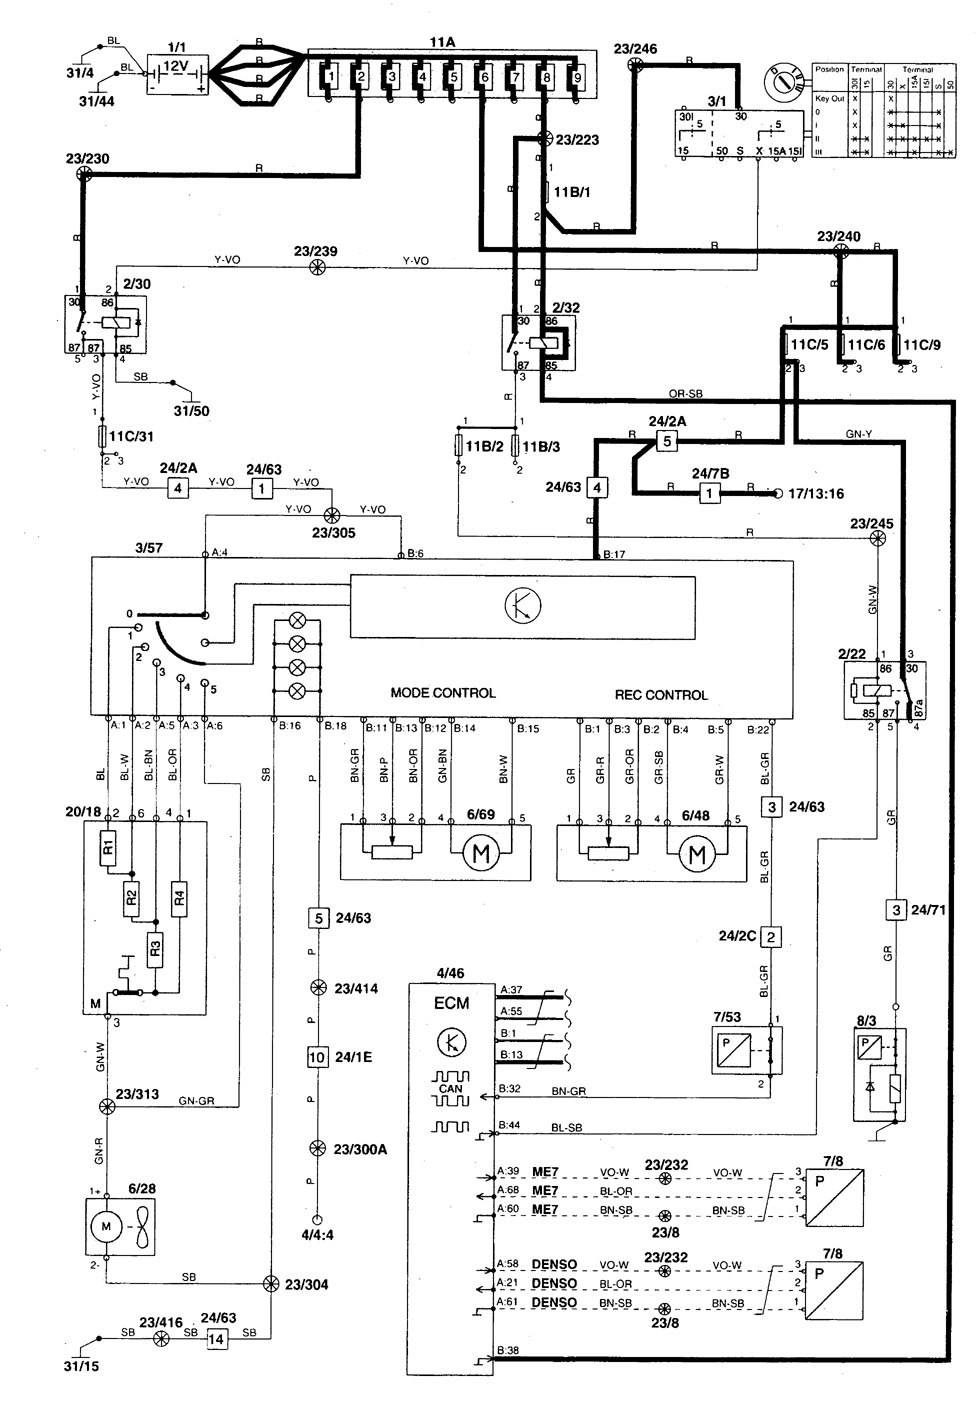 [DIAGRAM_3US]  A4AC65 Wiring Diagram 1998 Volvo V70 Glt | Wiring Resources | 1998 Volvo S70 Wiring Diagram Component Identification |  | Wiring Resources